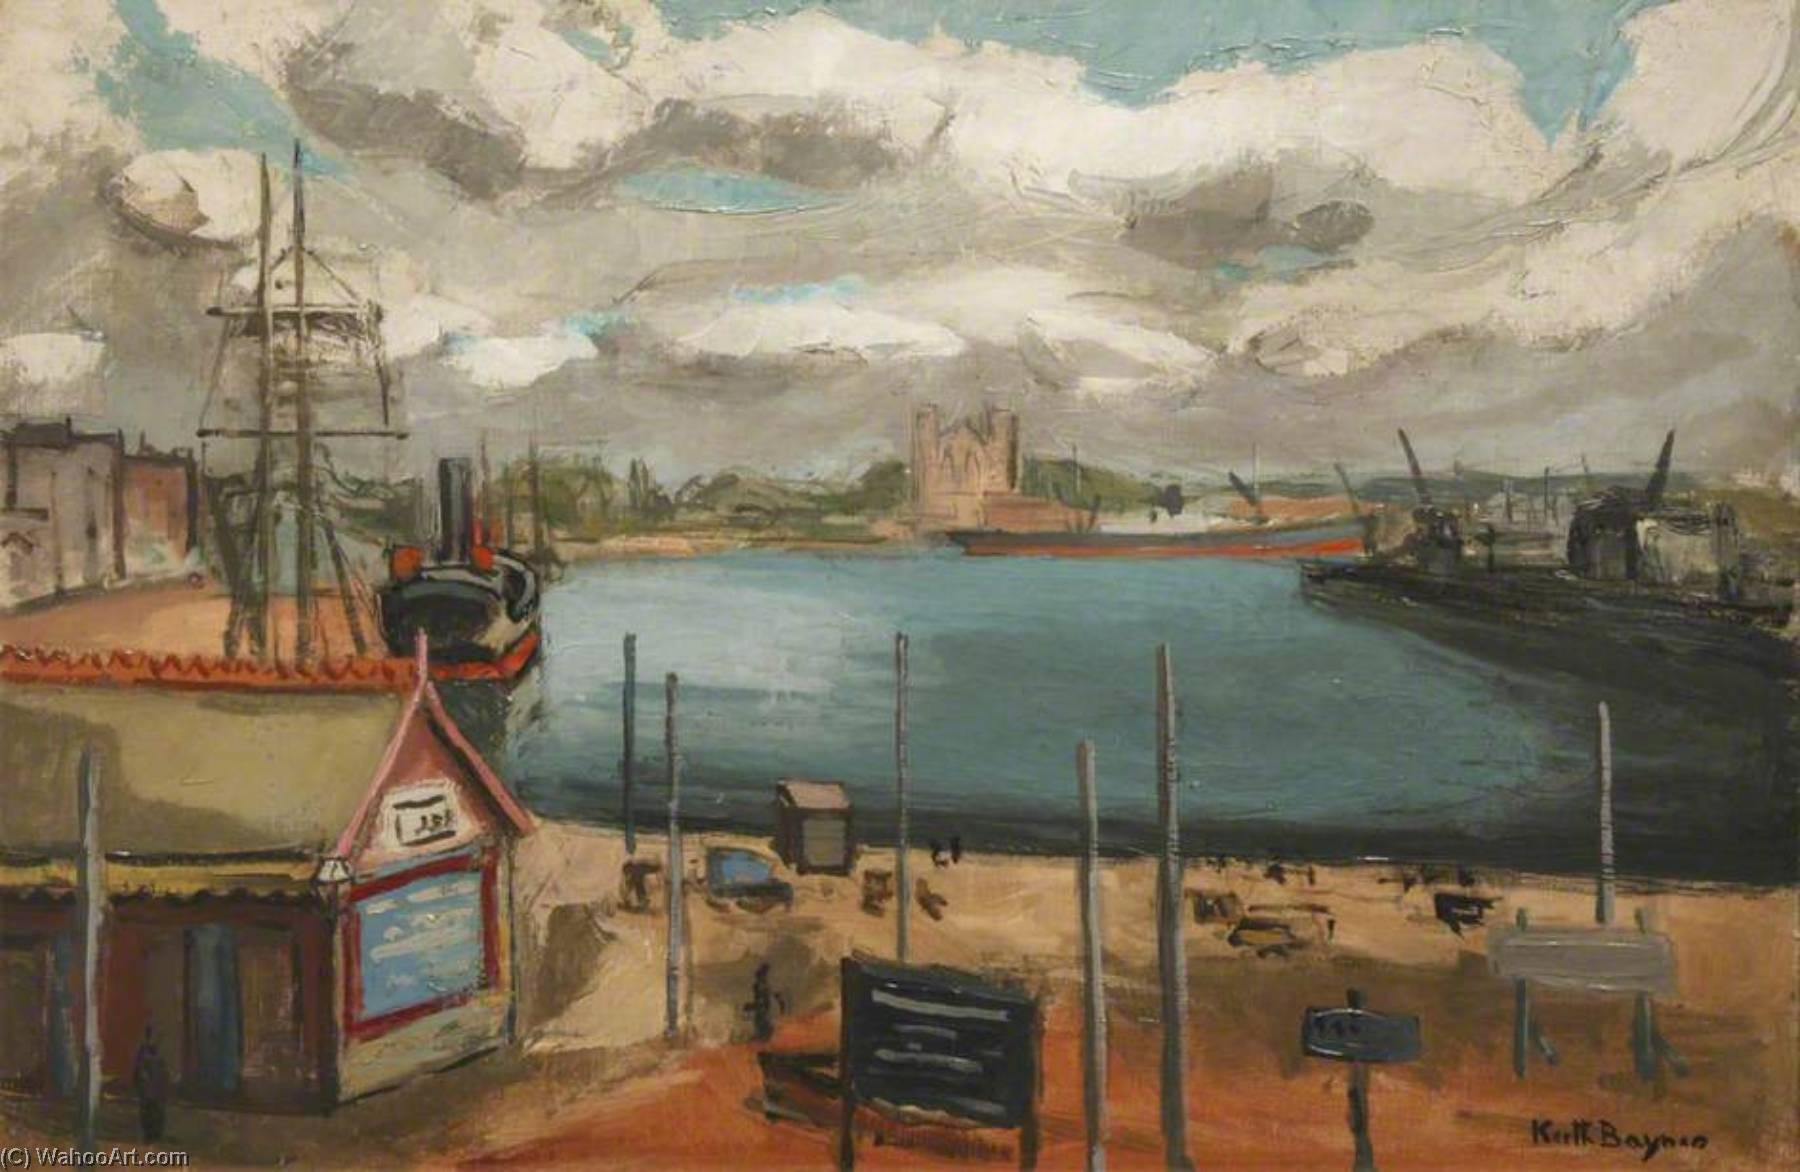 Harbour, 1930 by Keith Baynes | Reproductions Keith Baynes | WahooArt.com